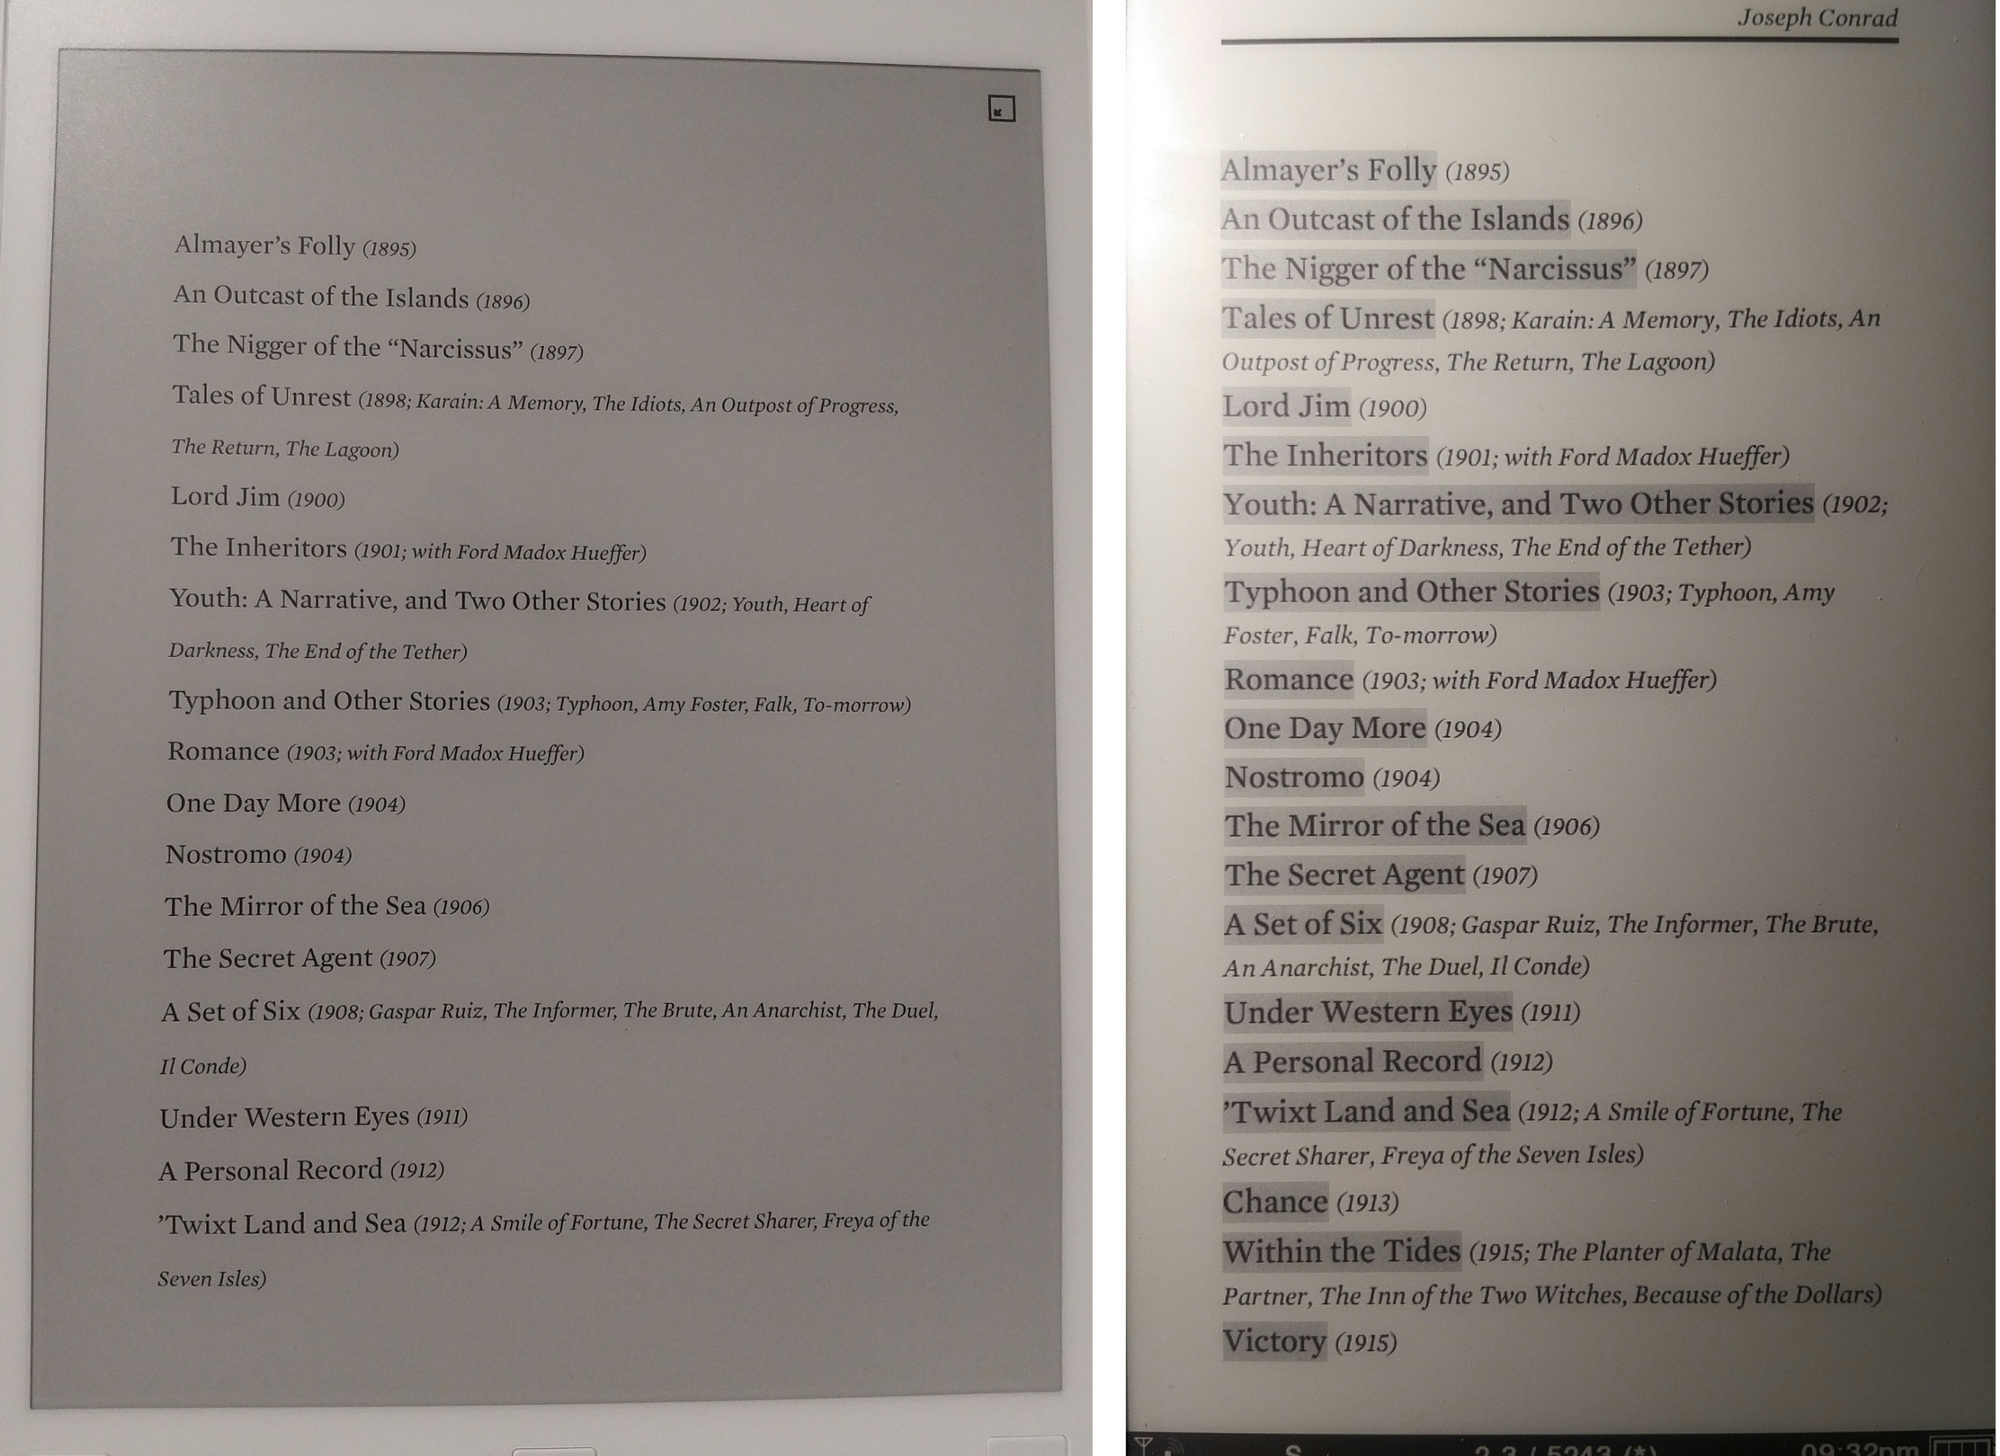 Nothing remarkable about the remarkable paper tablet a disastrous daily edition is able to display a table of contents whenever you need it remarkable sadly lacks this functionality exactly as it does with pdfs fandeluxe Images